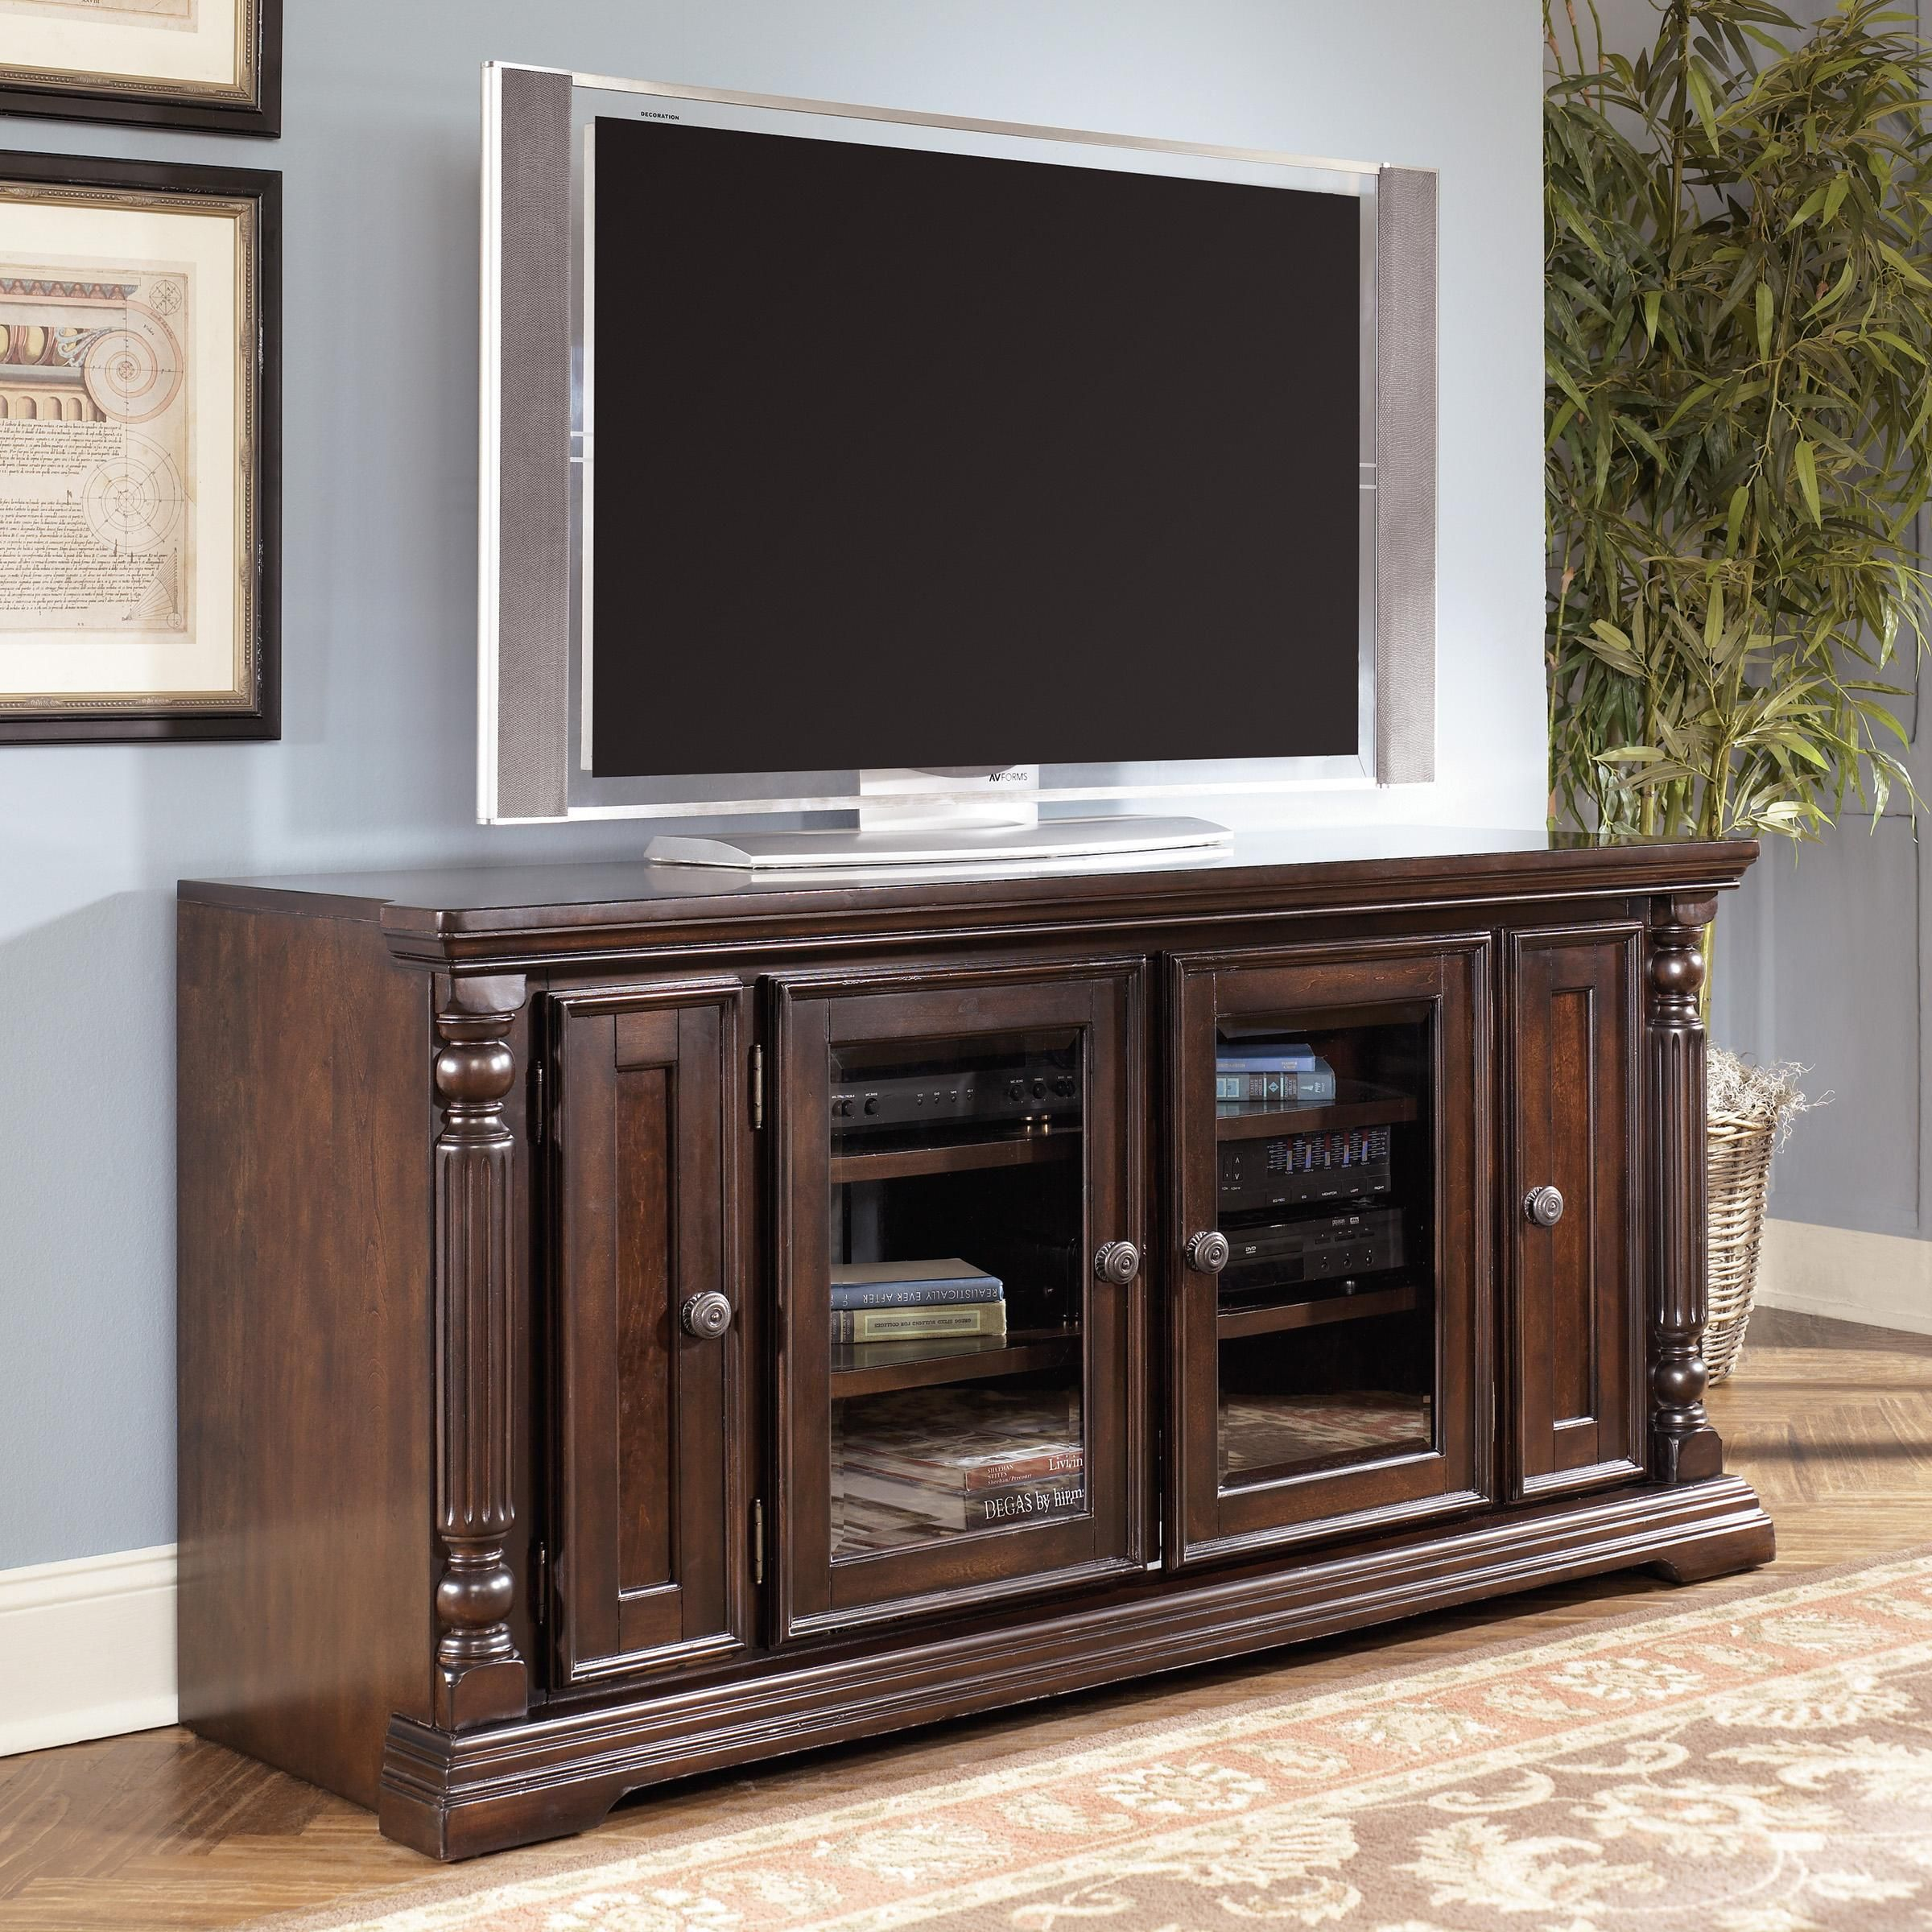 Tall Tv Stand New Home Decor Dark Wood Tv Stand Solid Wood Tv Stand Entertainment Center